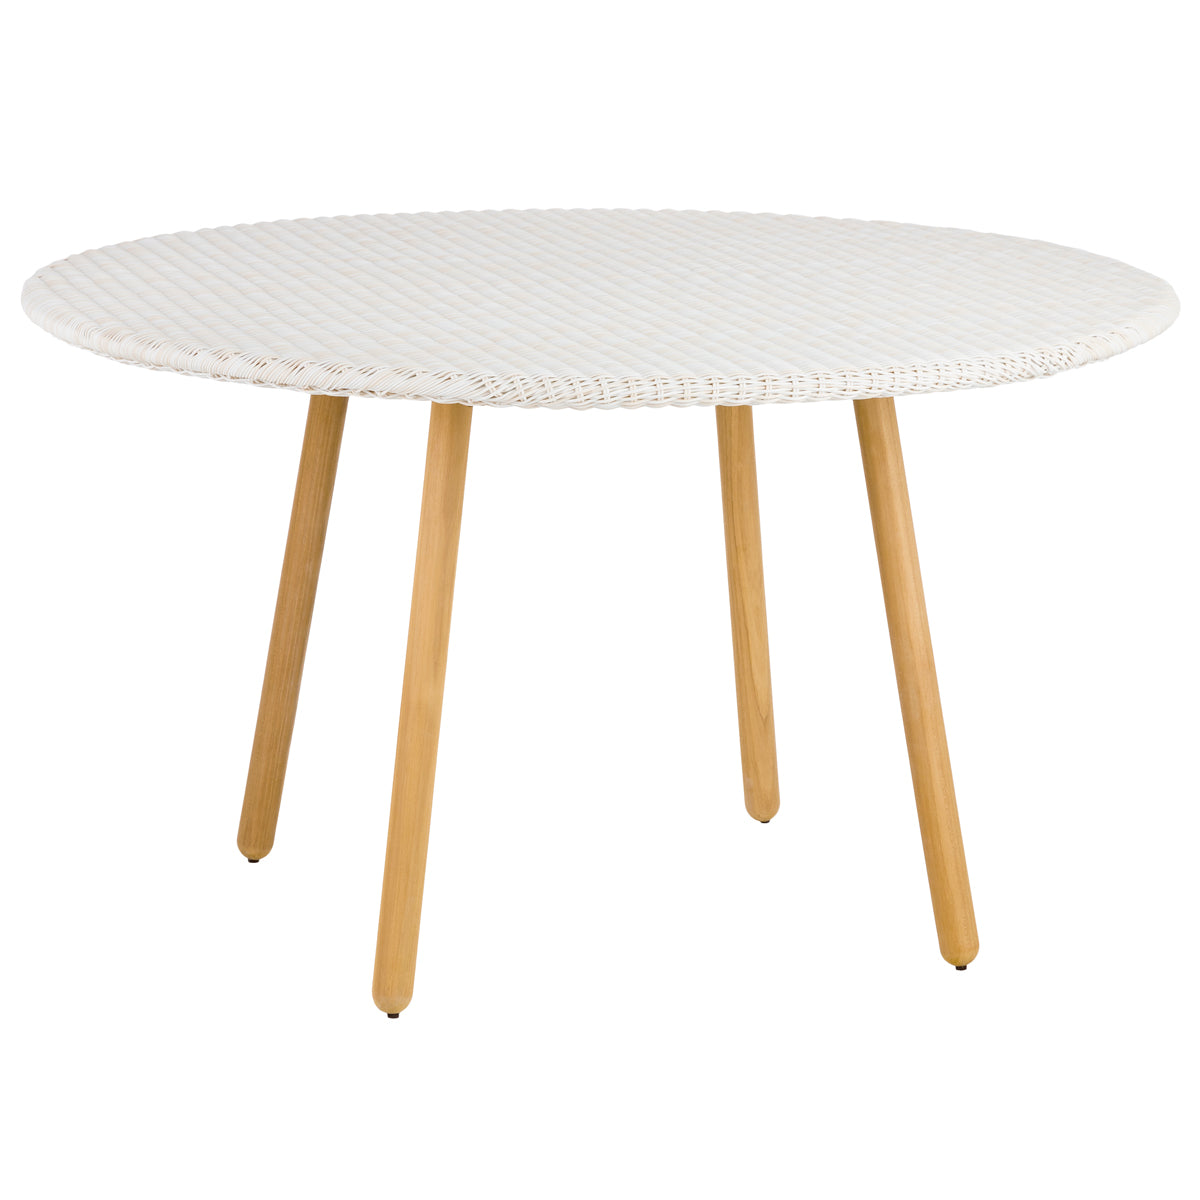 Round Outdoor Dining Table By Point Urban Avenue